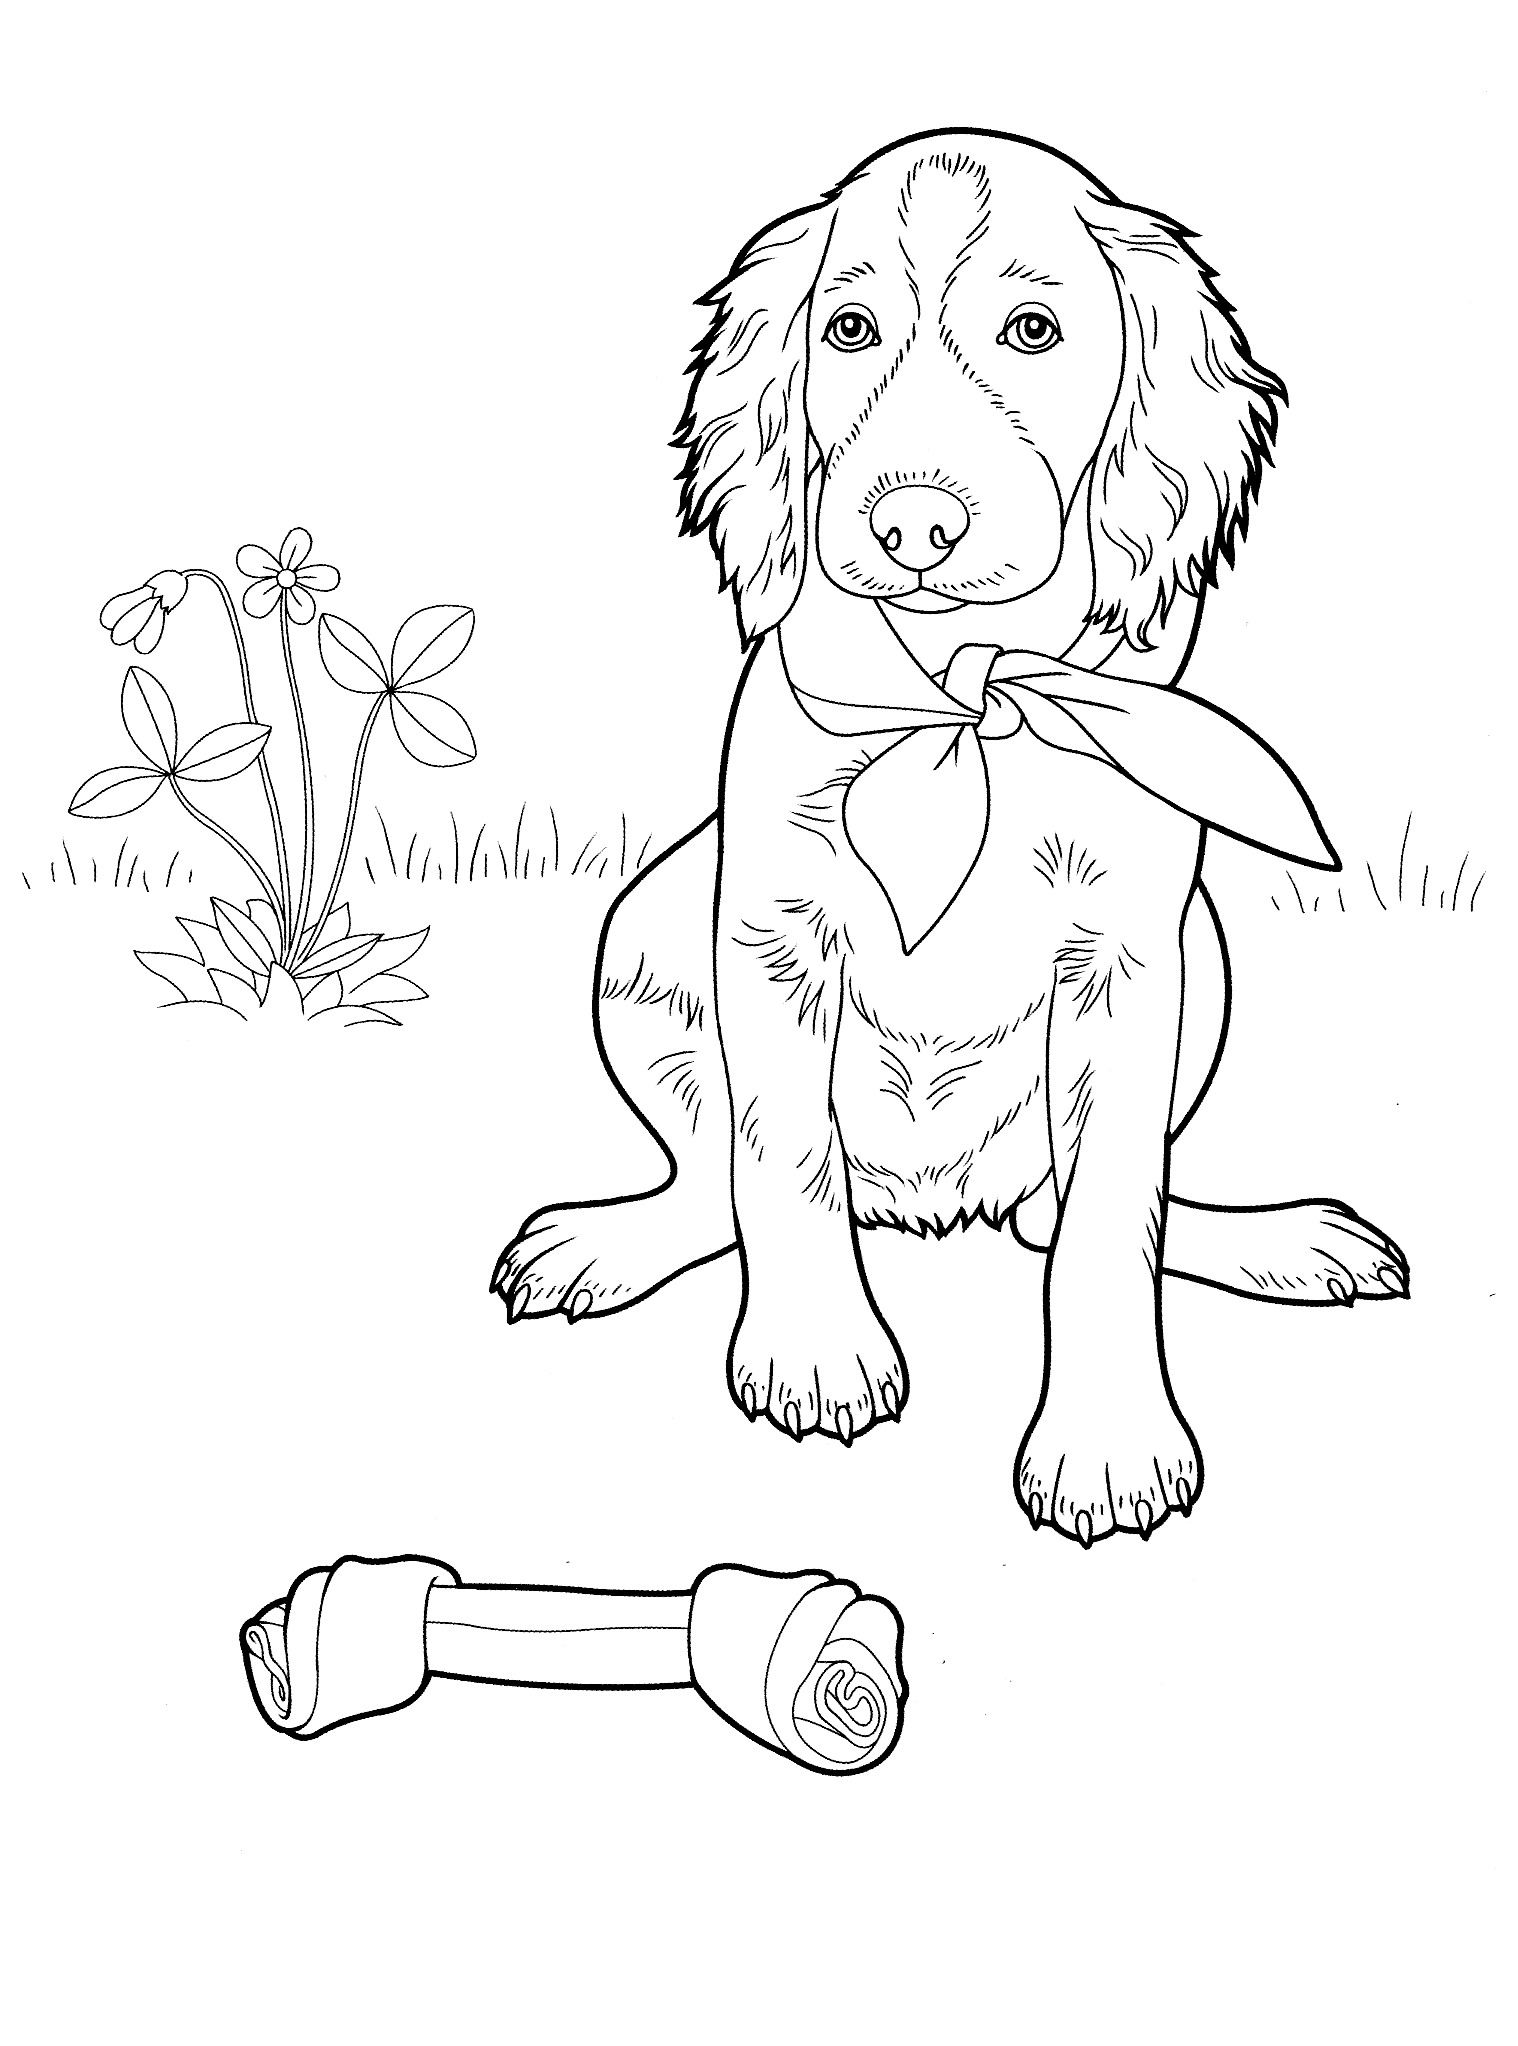 dog_coloring_pages_17 Teenagers coloring pages Puppy